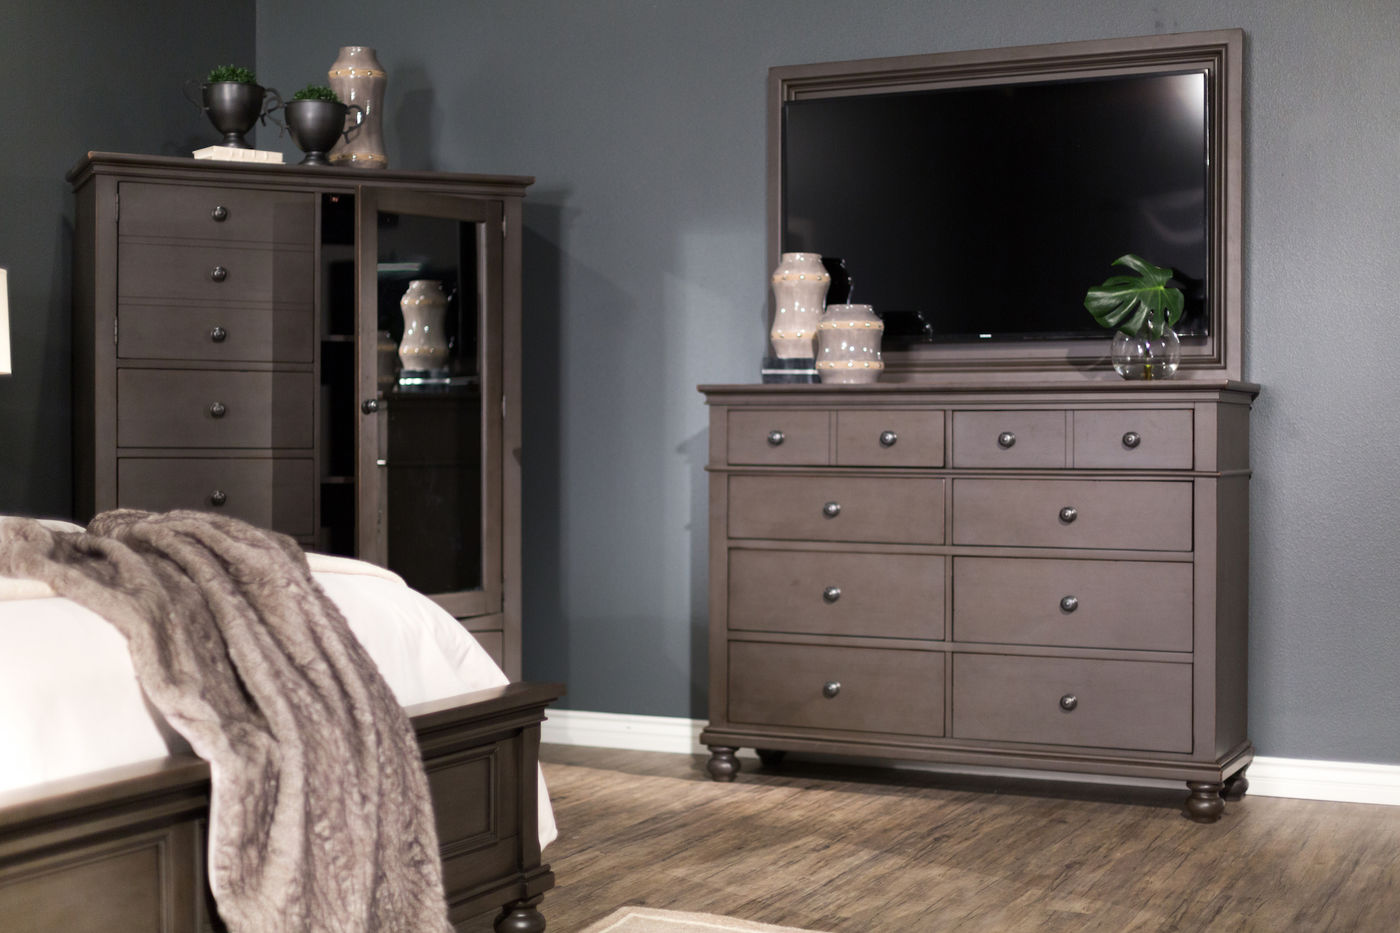 Picture of: Repurposing a Dresser into an Entertainment Center